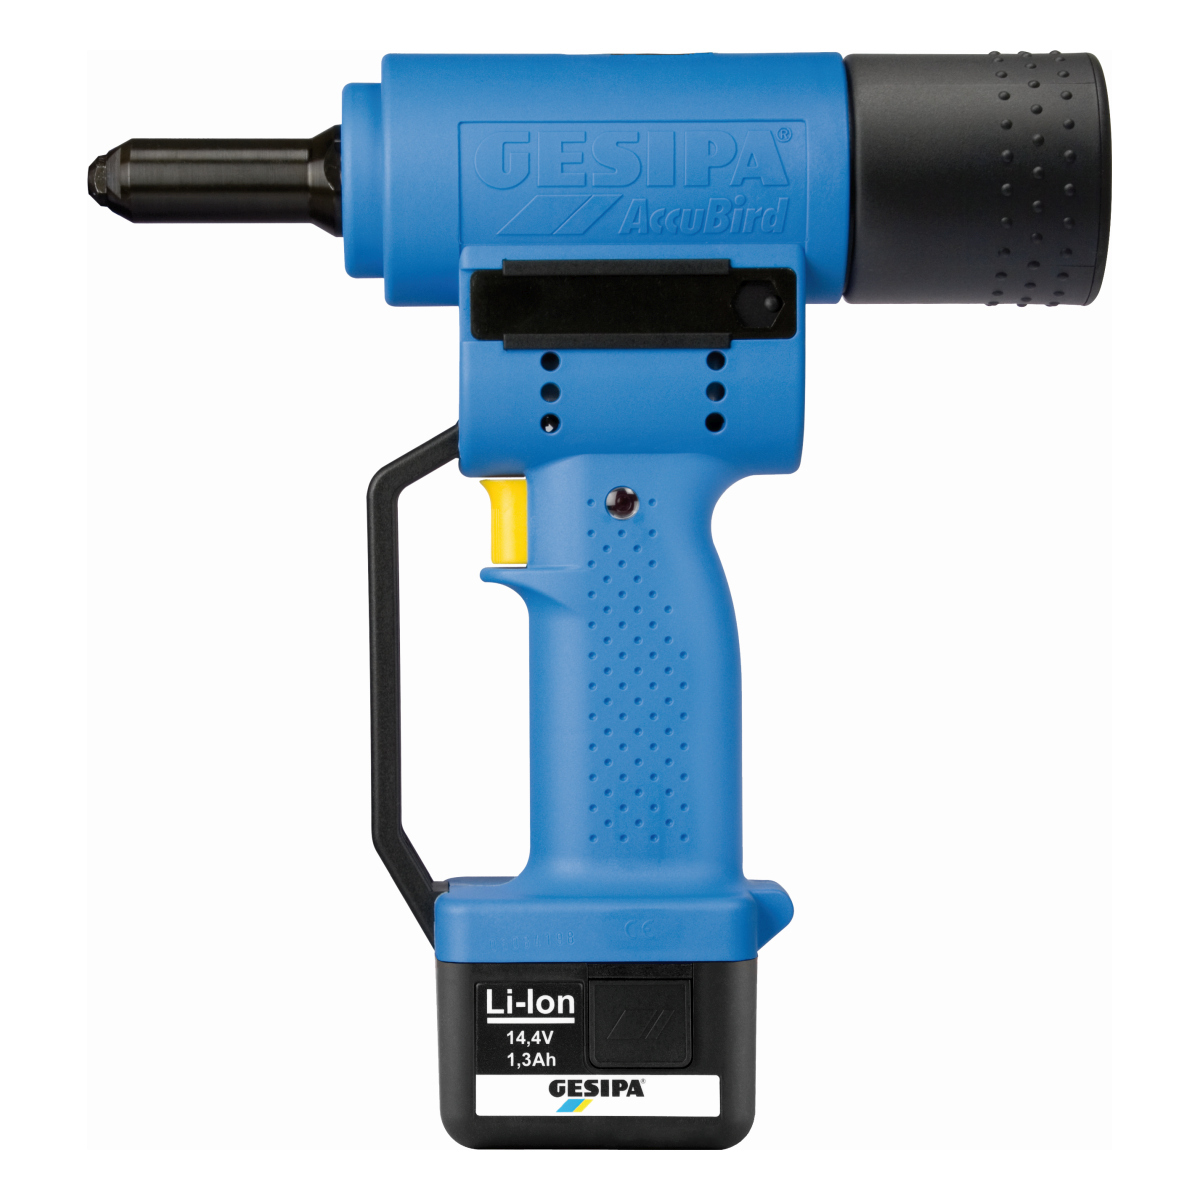 Battery Powered Riveting Tool - Li-Ion ACCUBIRD - 110V